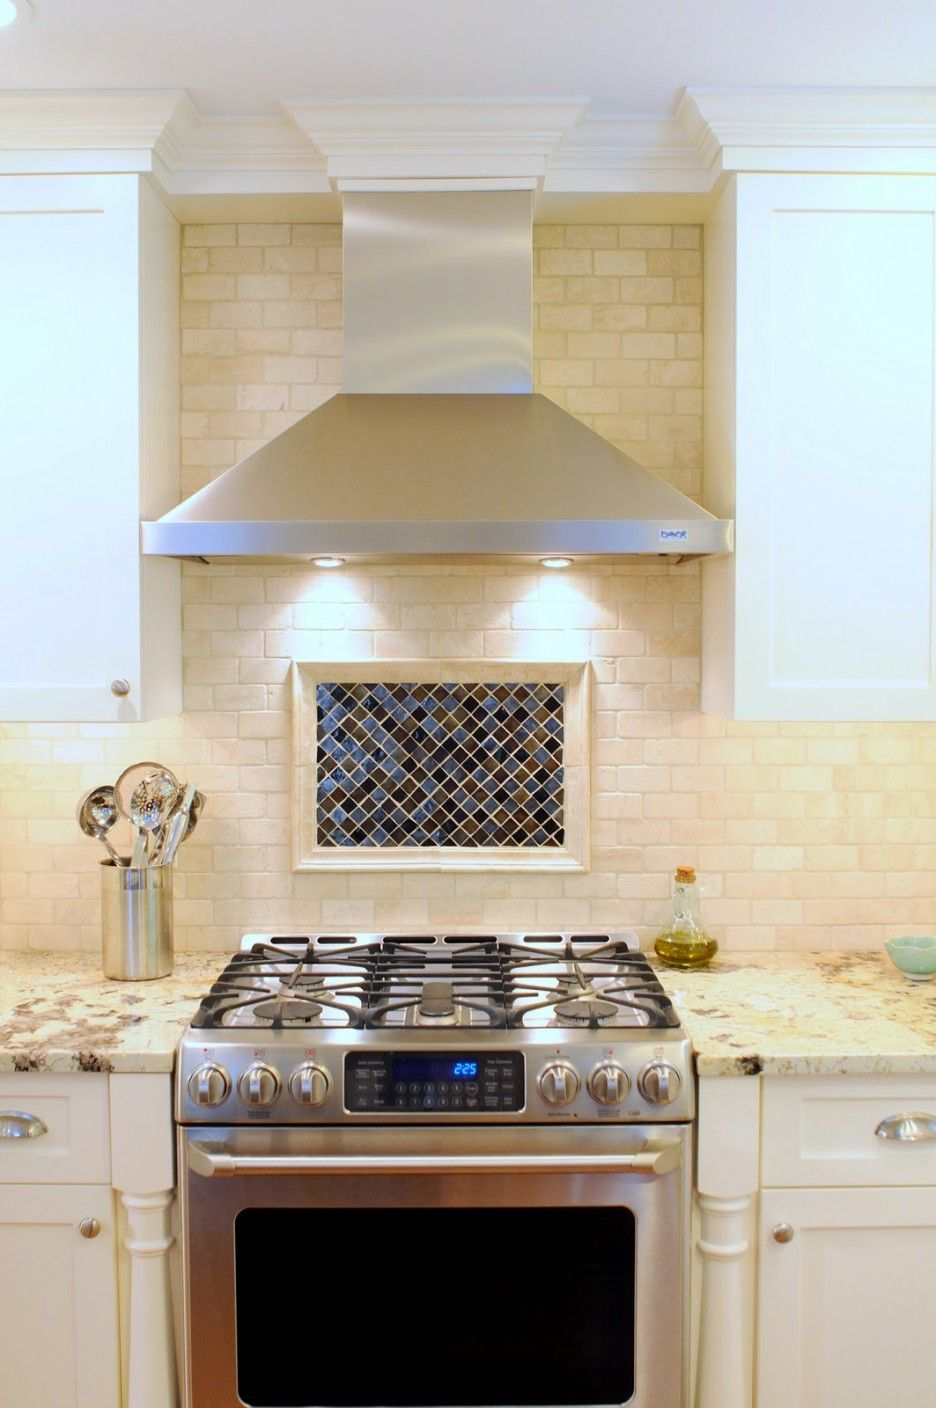 how to clean up oil from the stove top